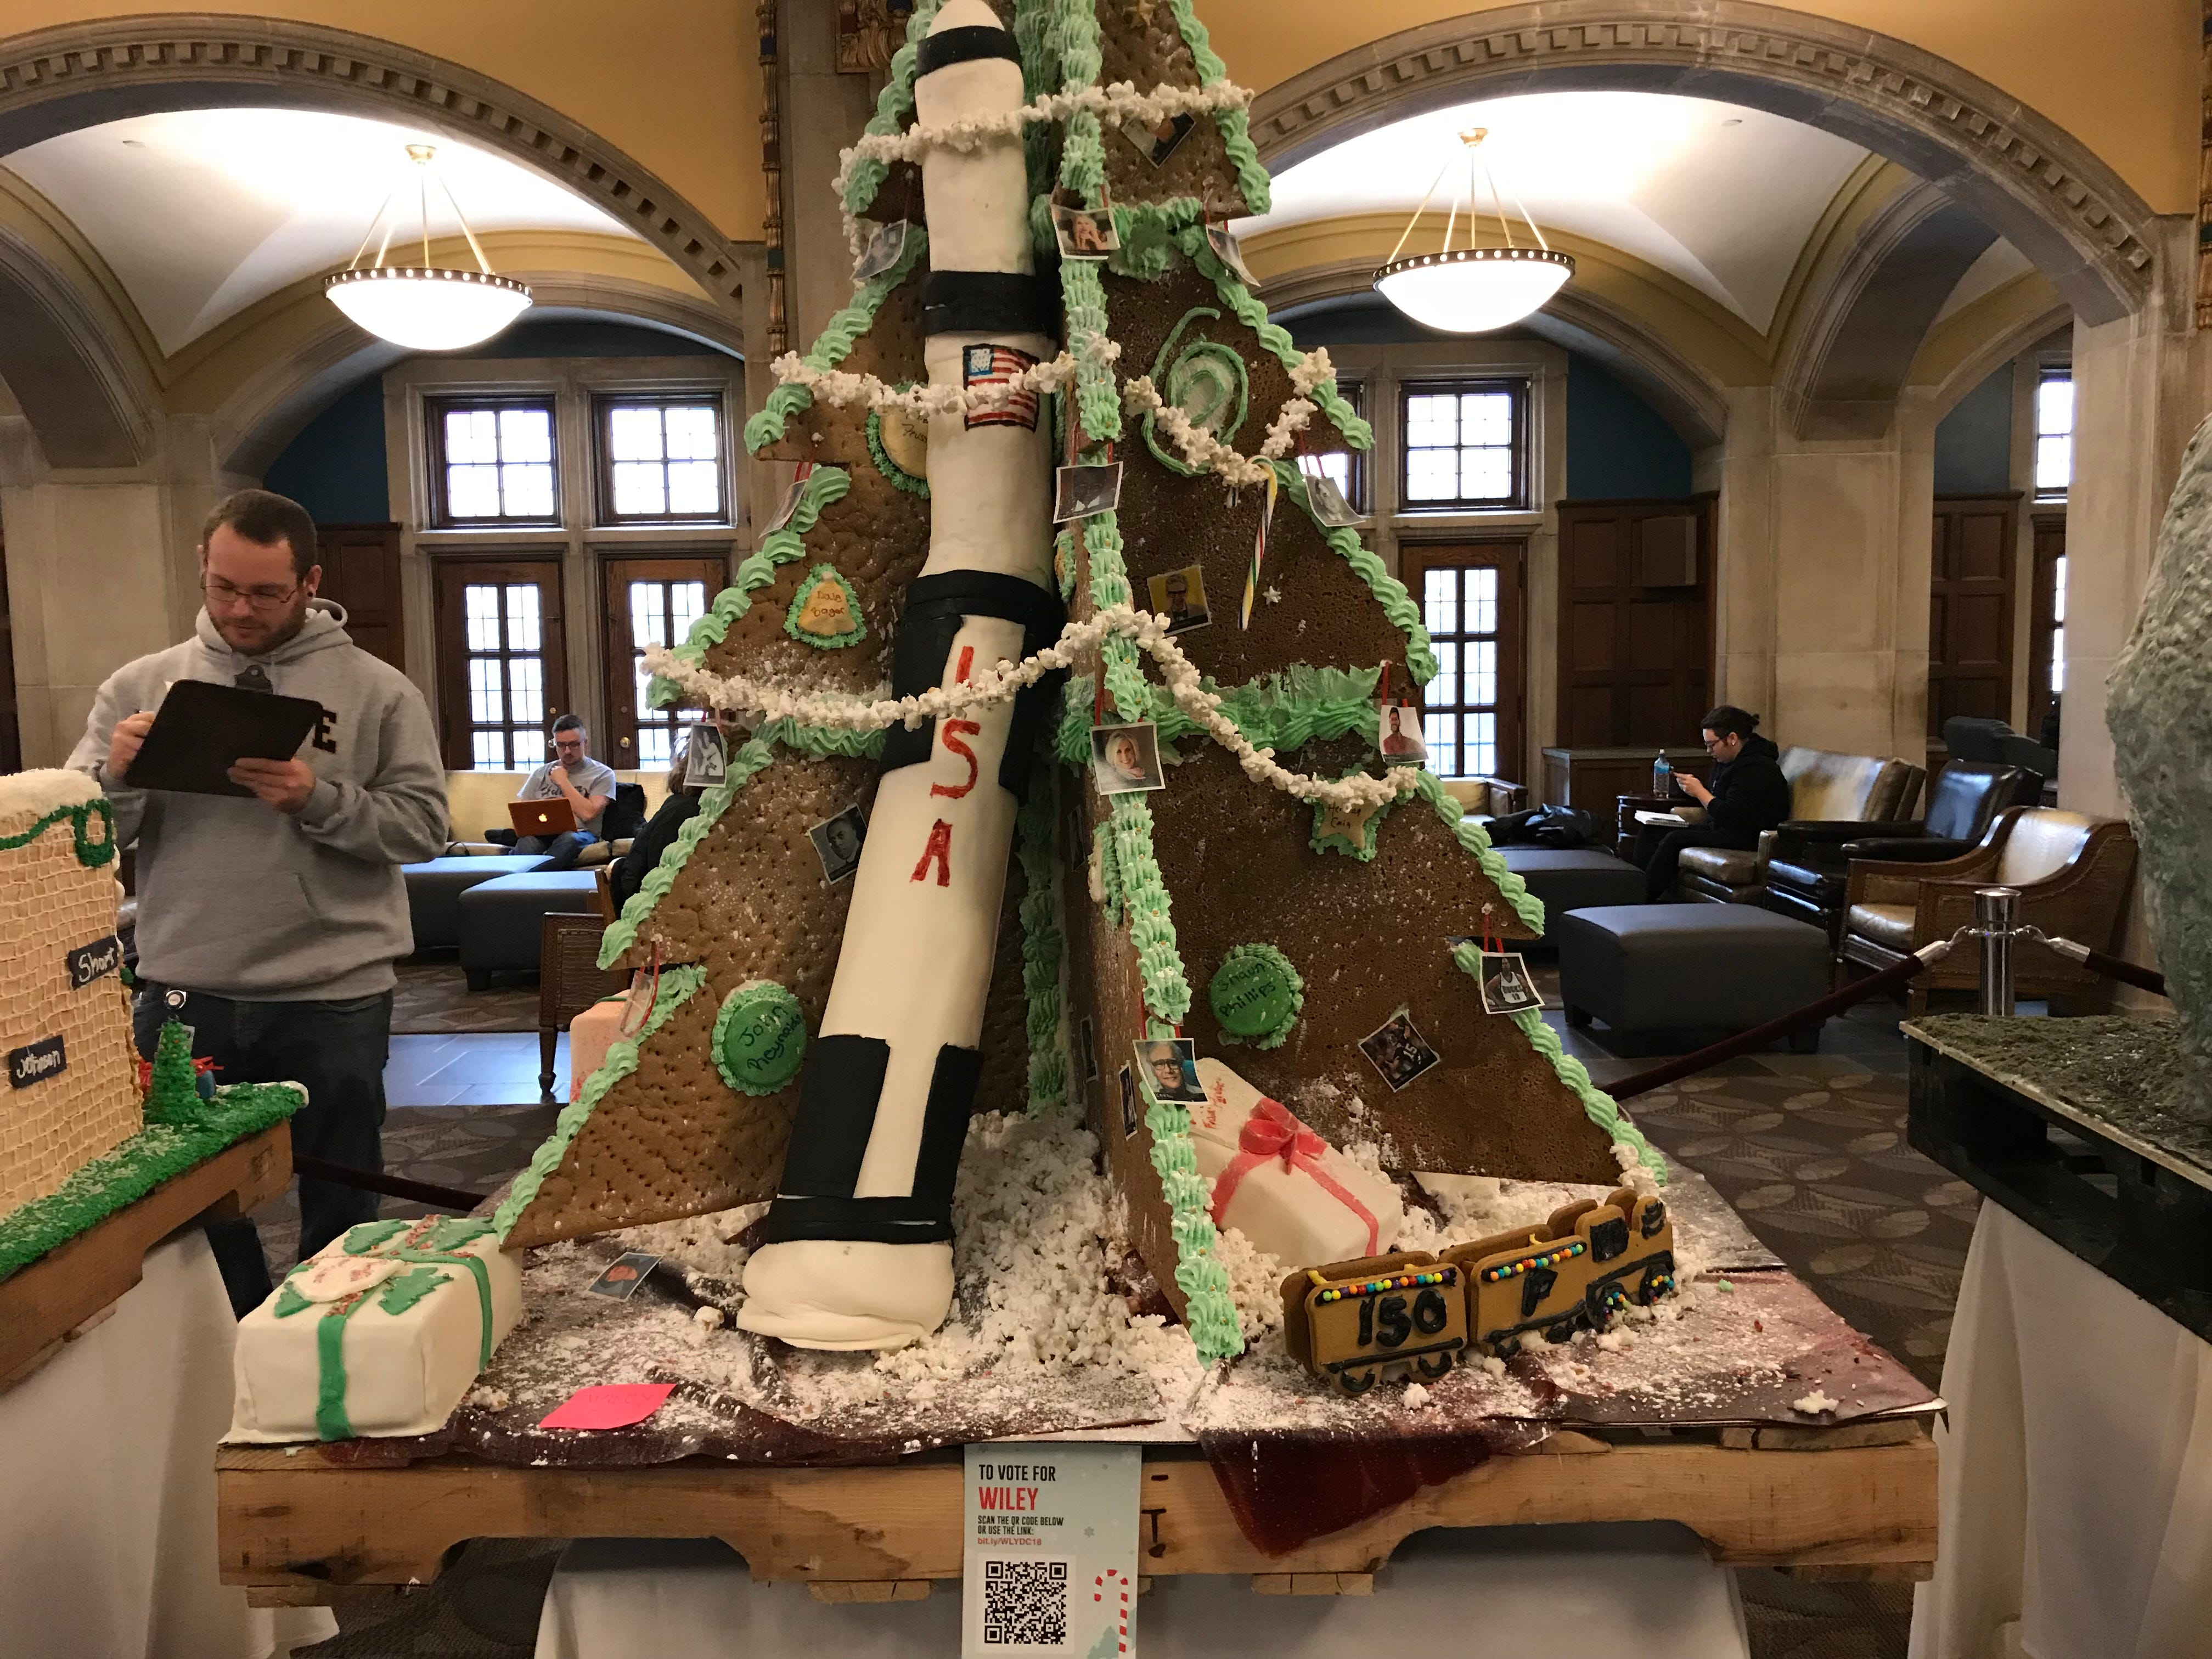 Wiley Dining Court's gingerbread display